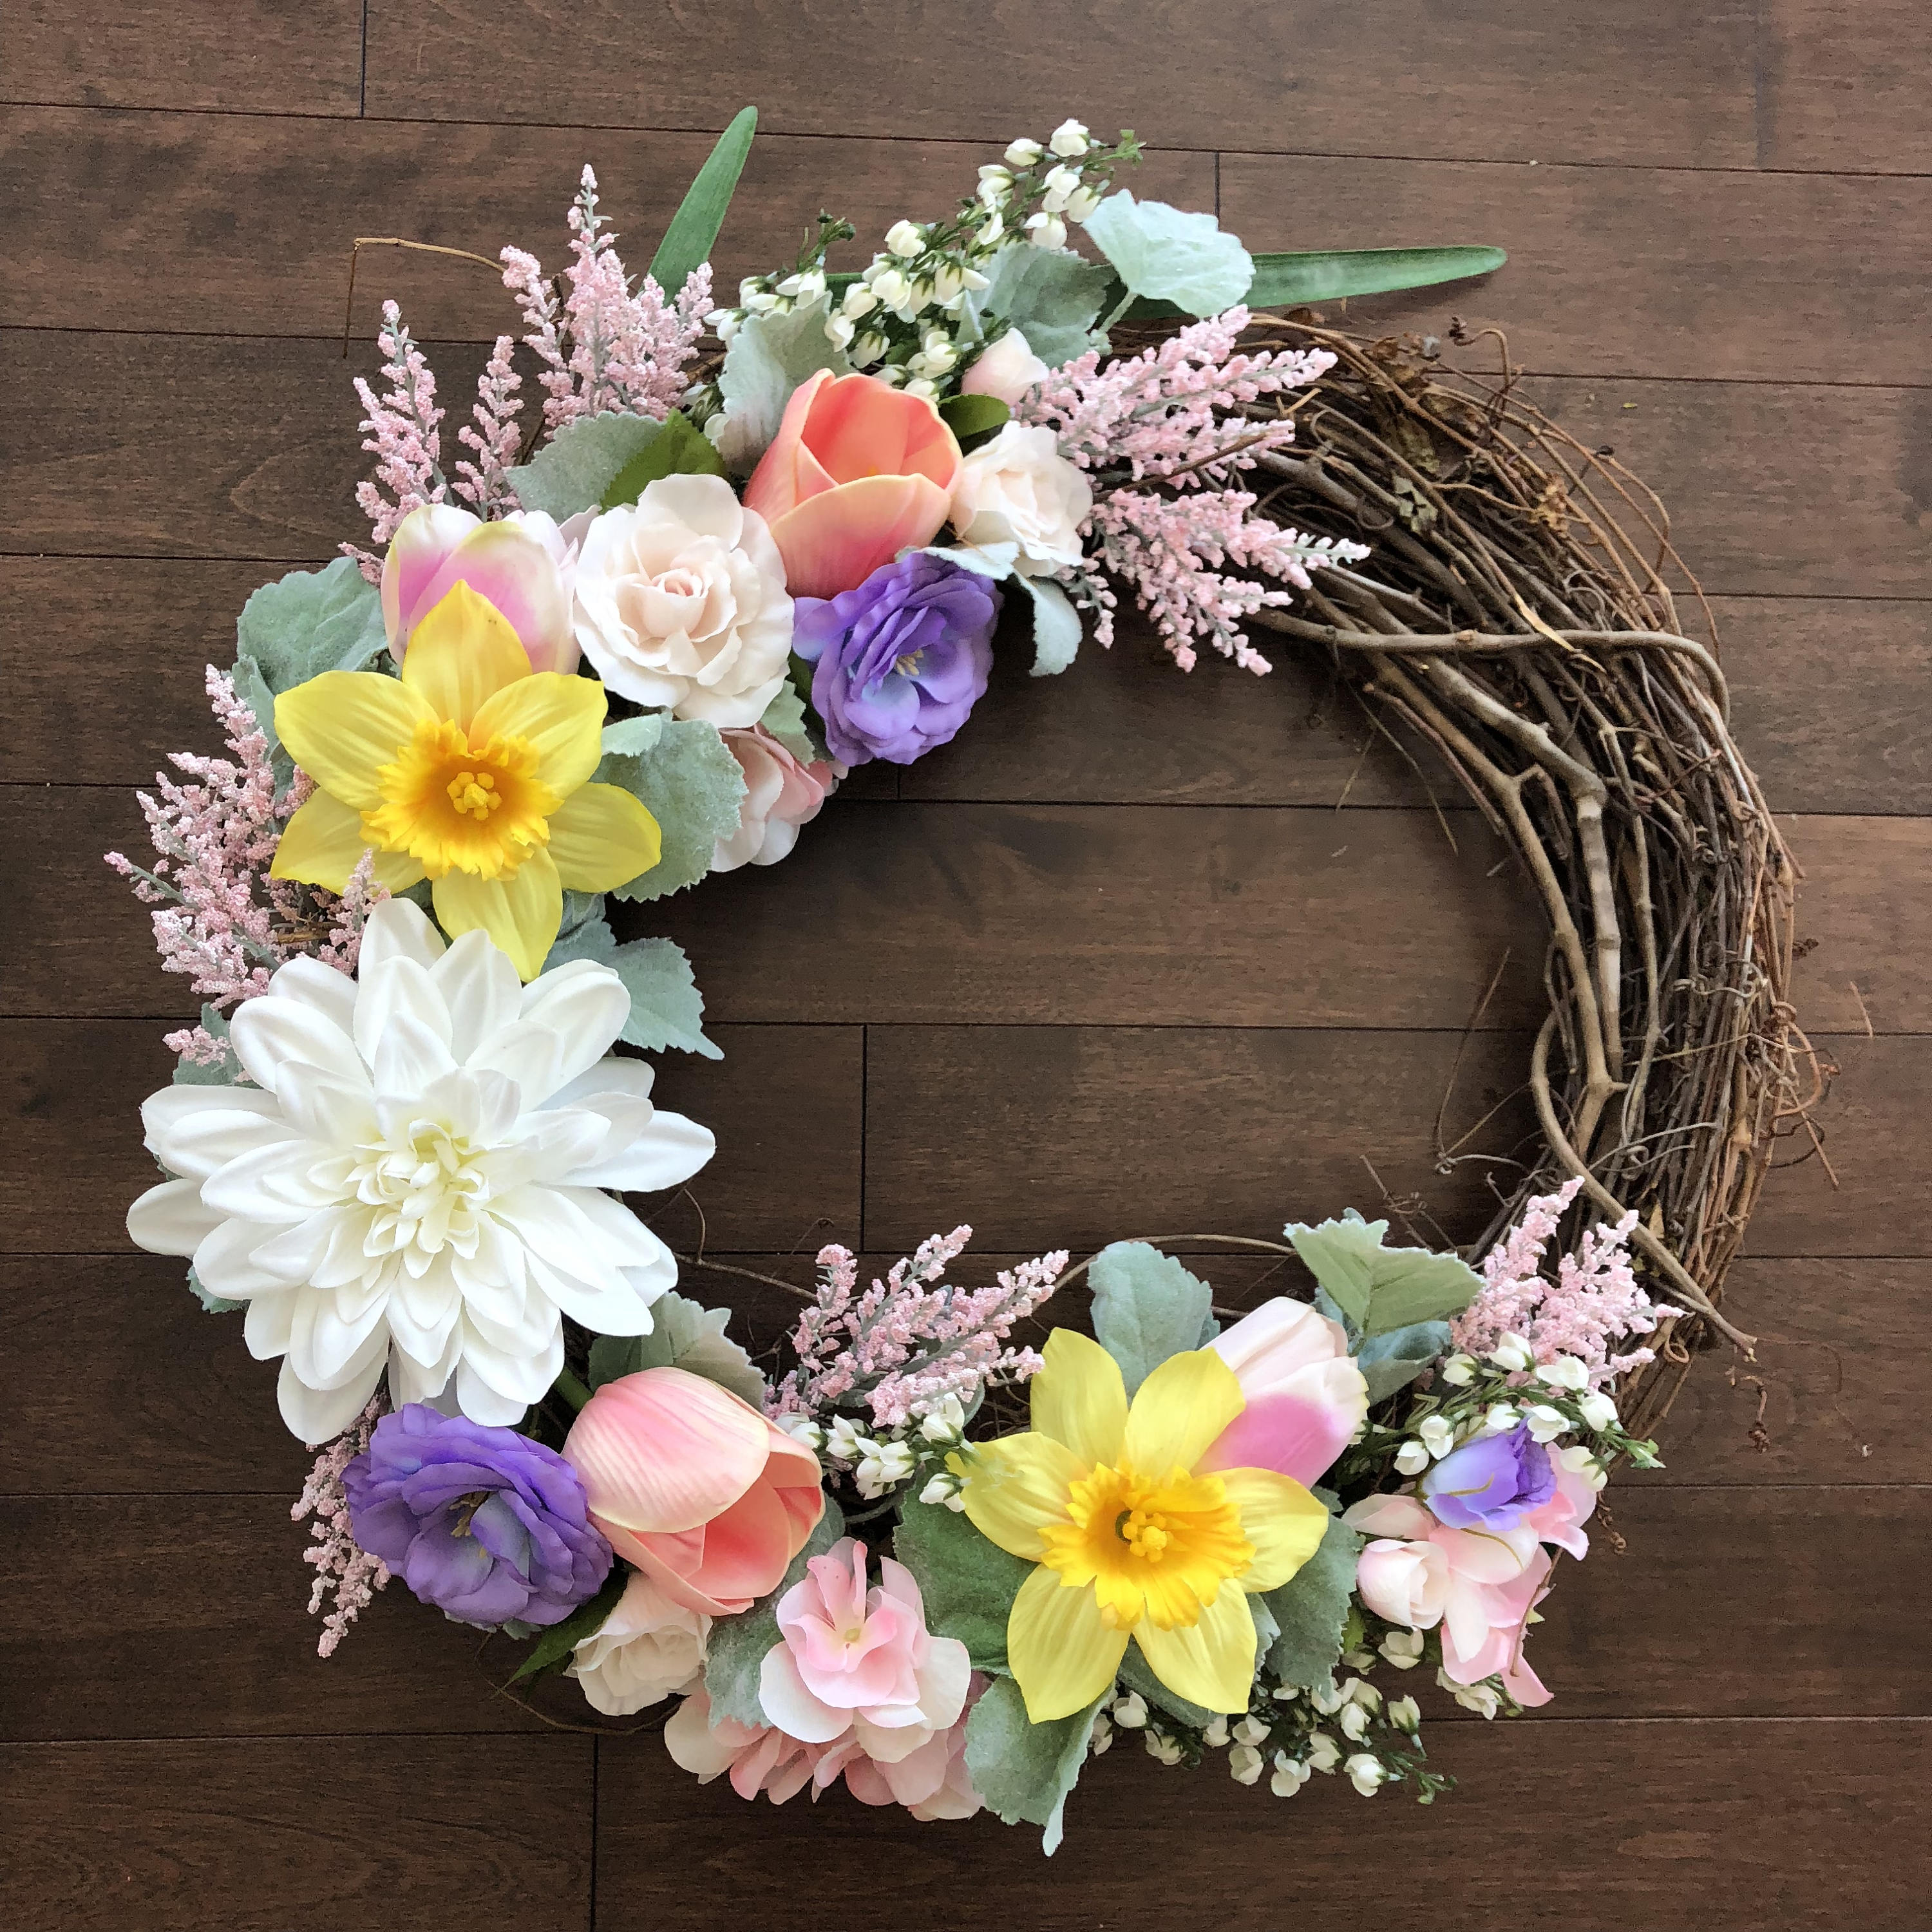 Charmant Spring Wreath, Easter Wreath, Easter Wreaths For Front Door, Spring Wreaths  For Front